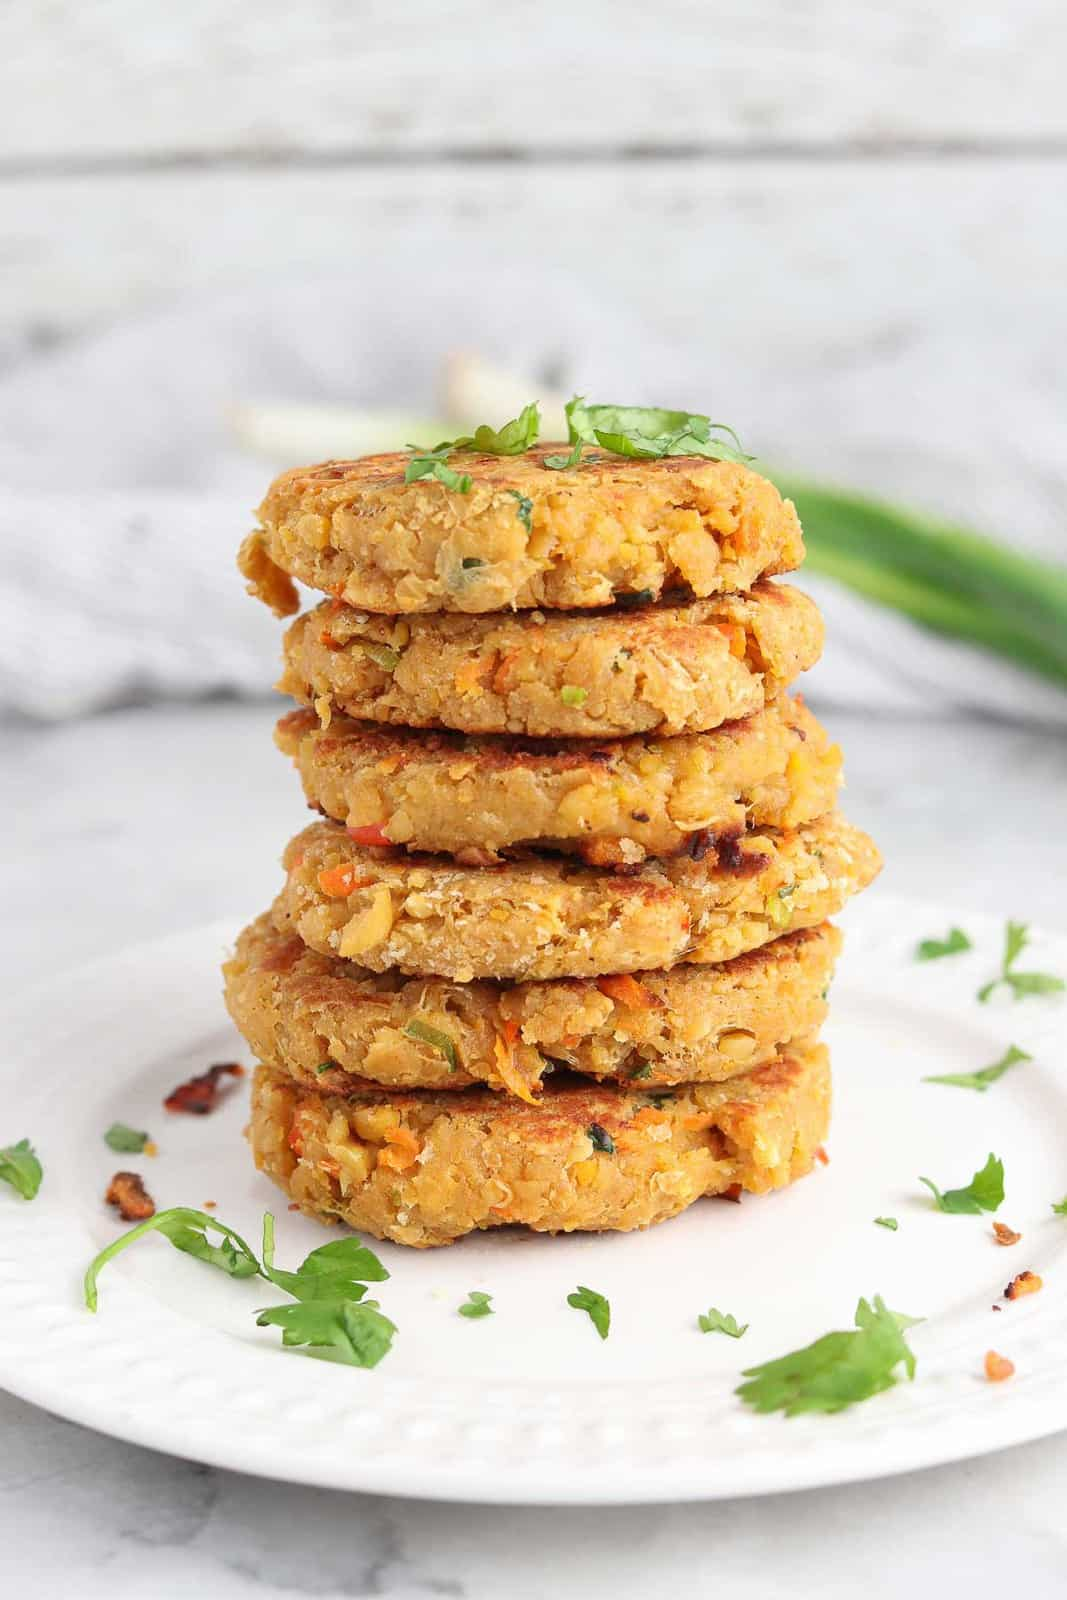 stack of vegan chickpea patties on a plate with herbs